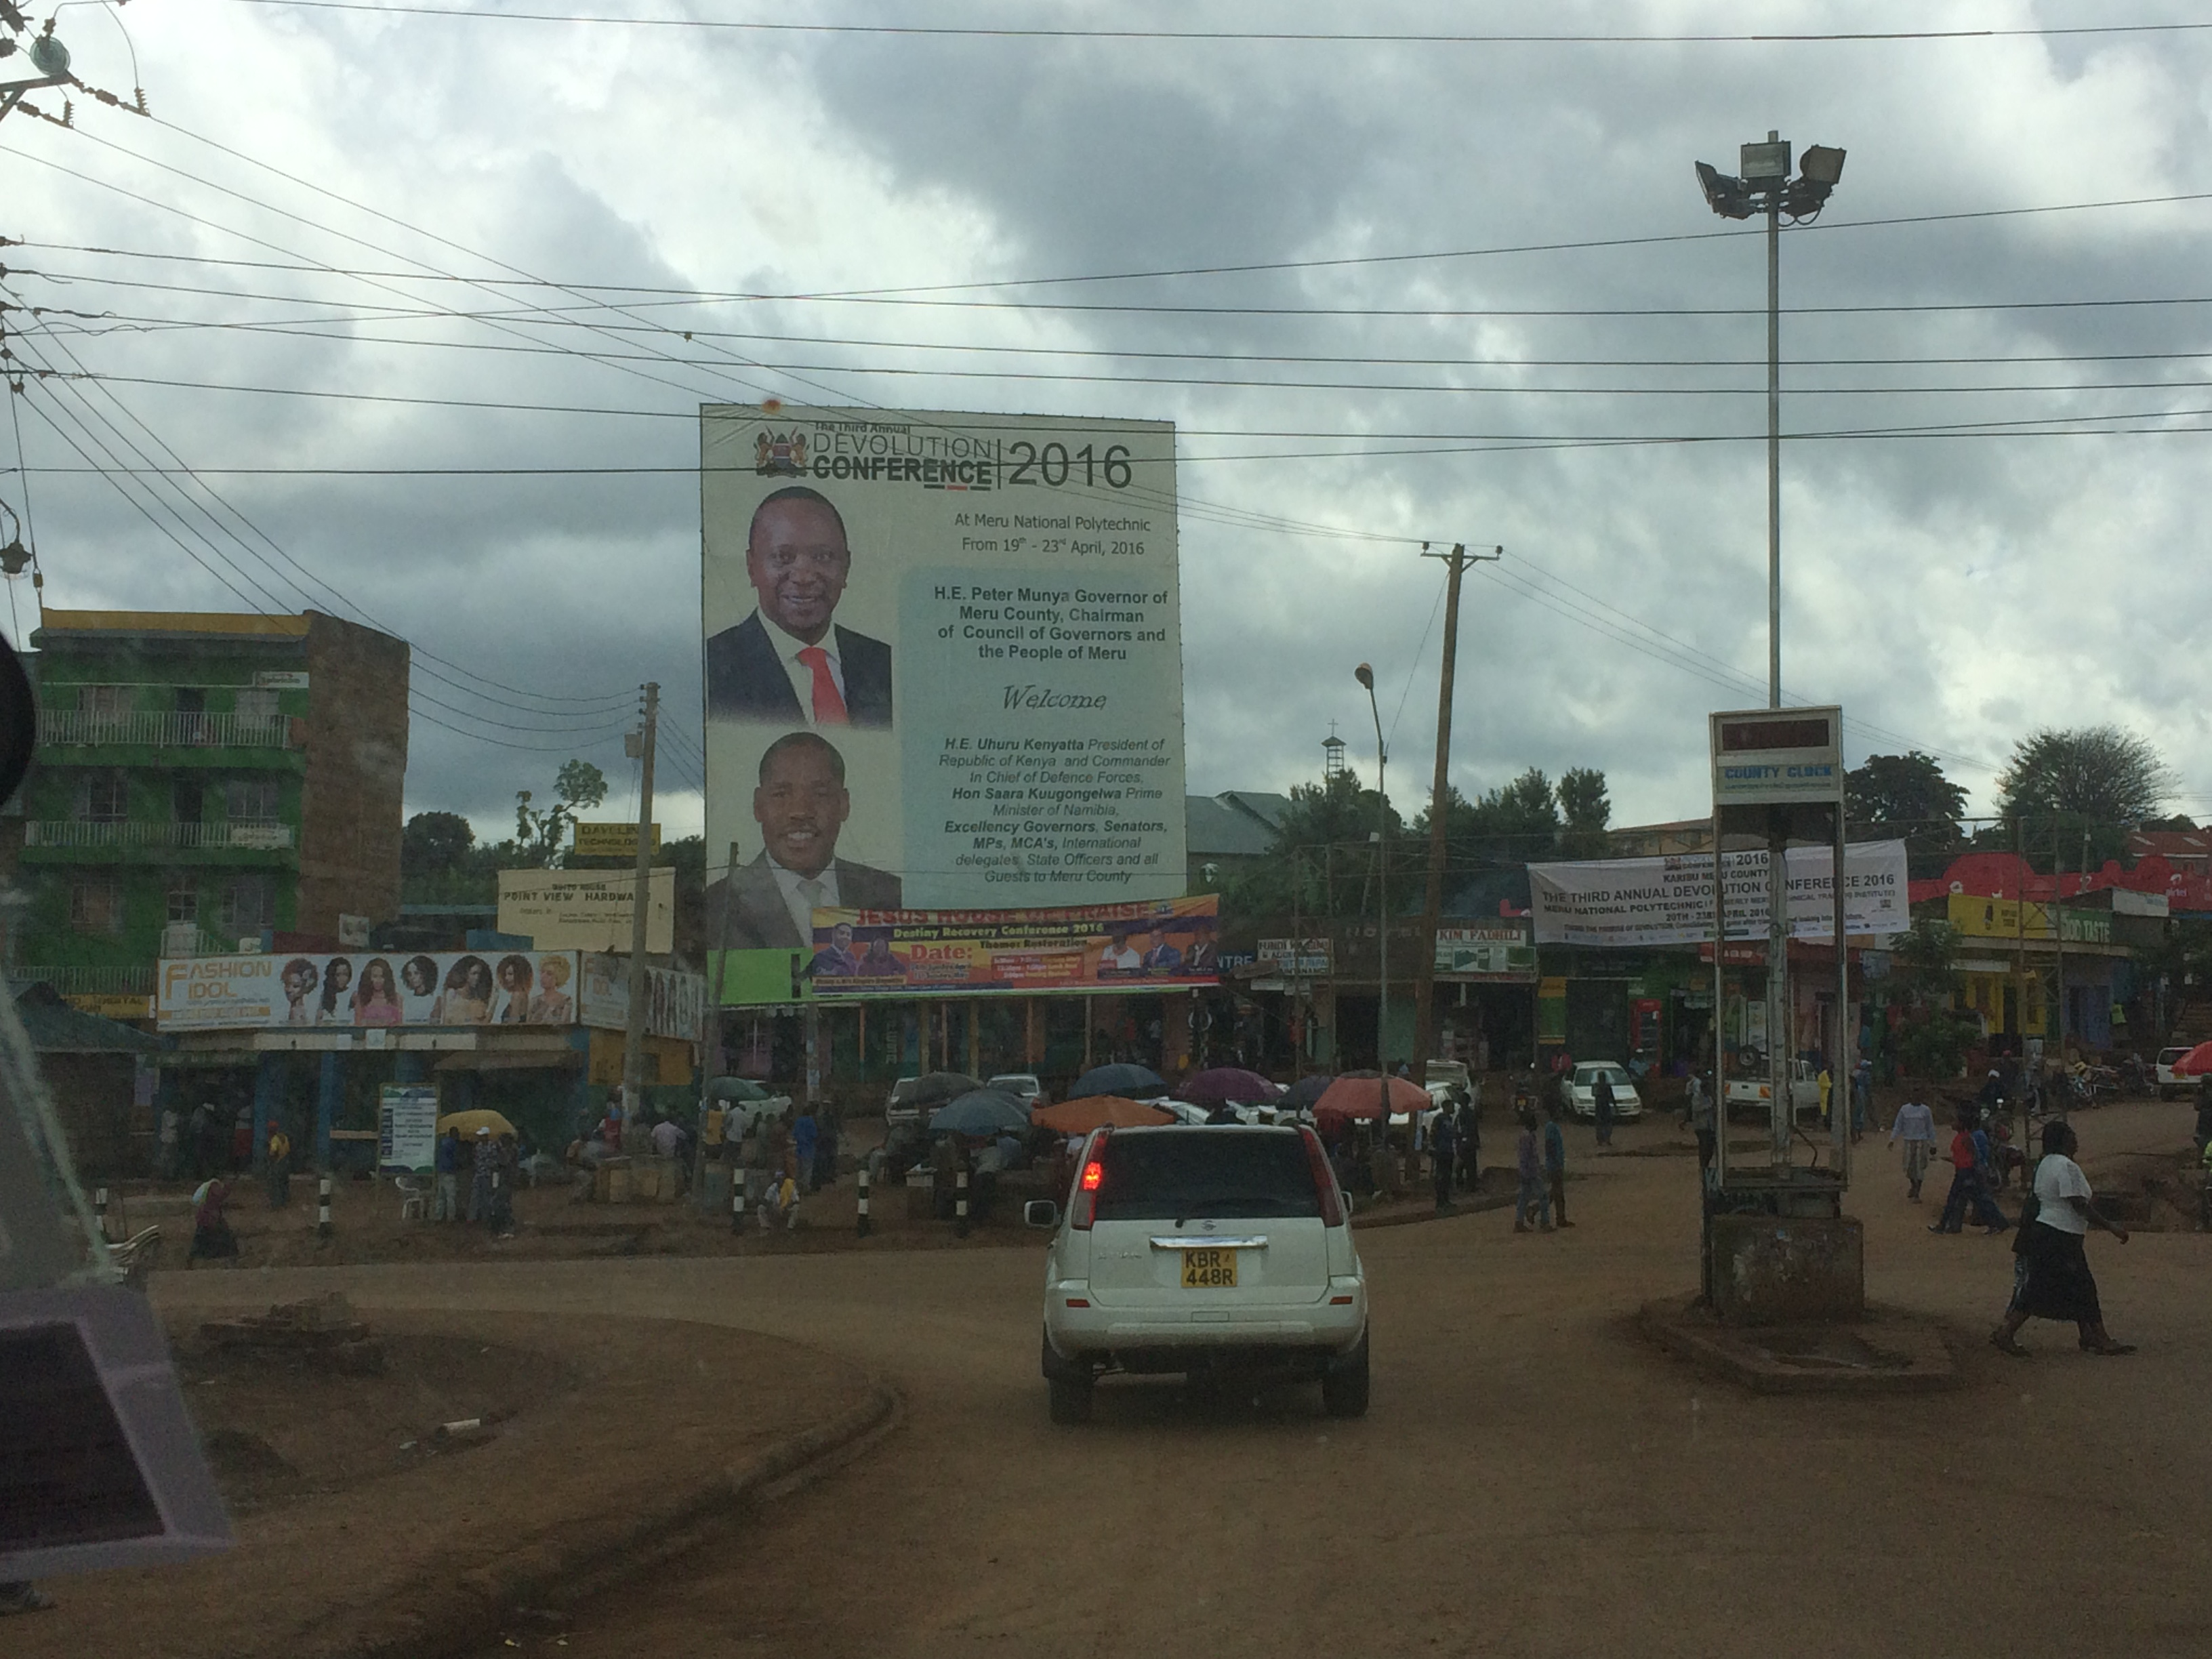 Meru town welcomes the Devolution Conference delegates